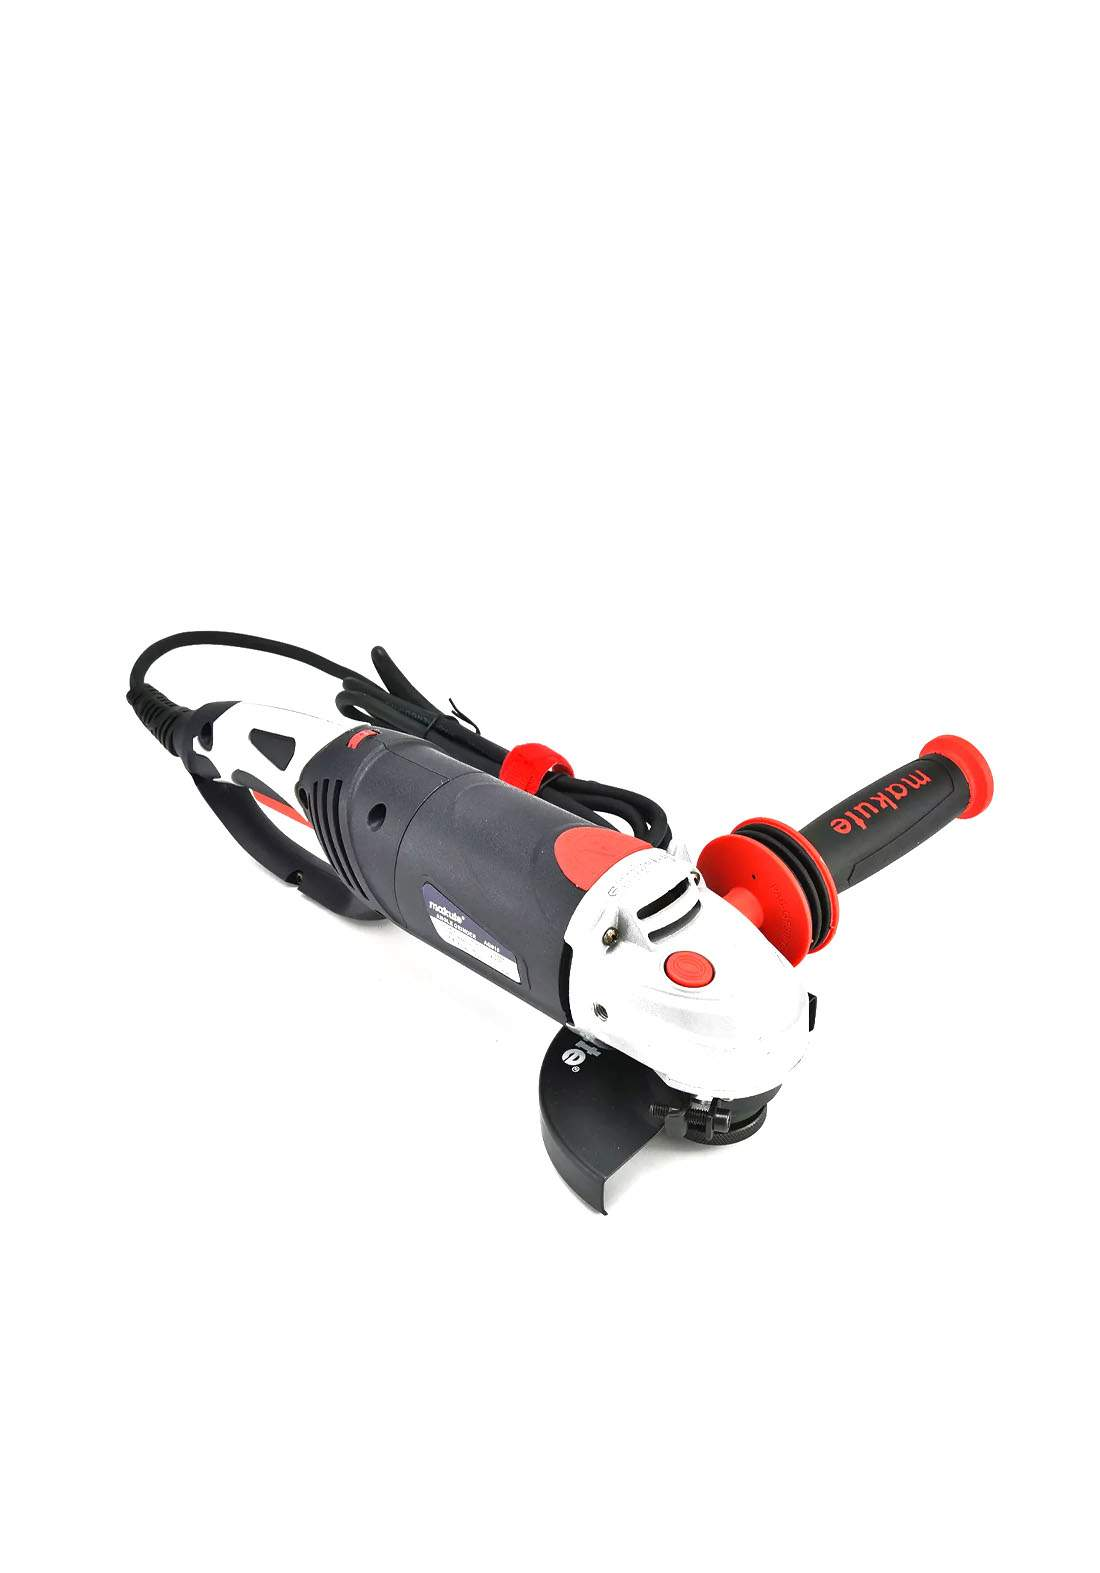 Makute AG010 Angle Grinder 1400 W  125 mm  كوسرة